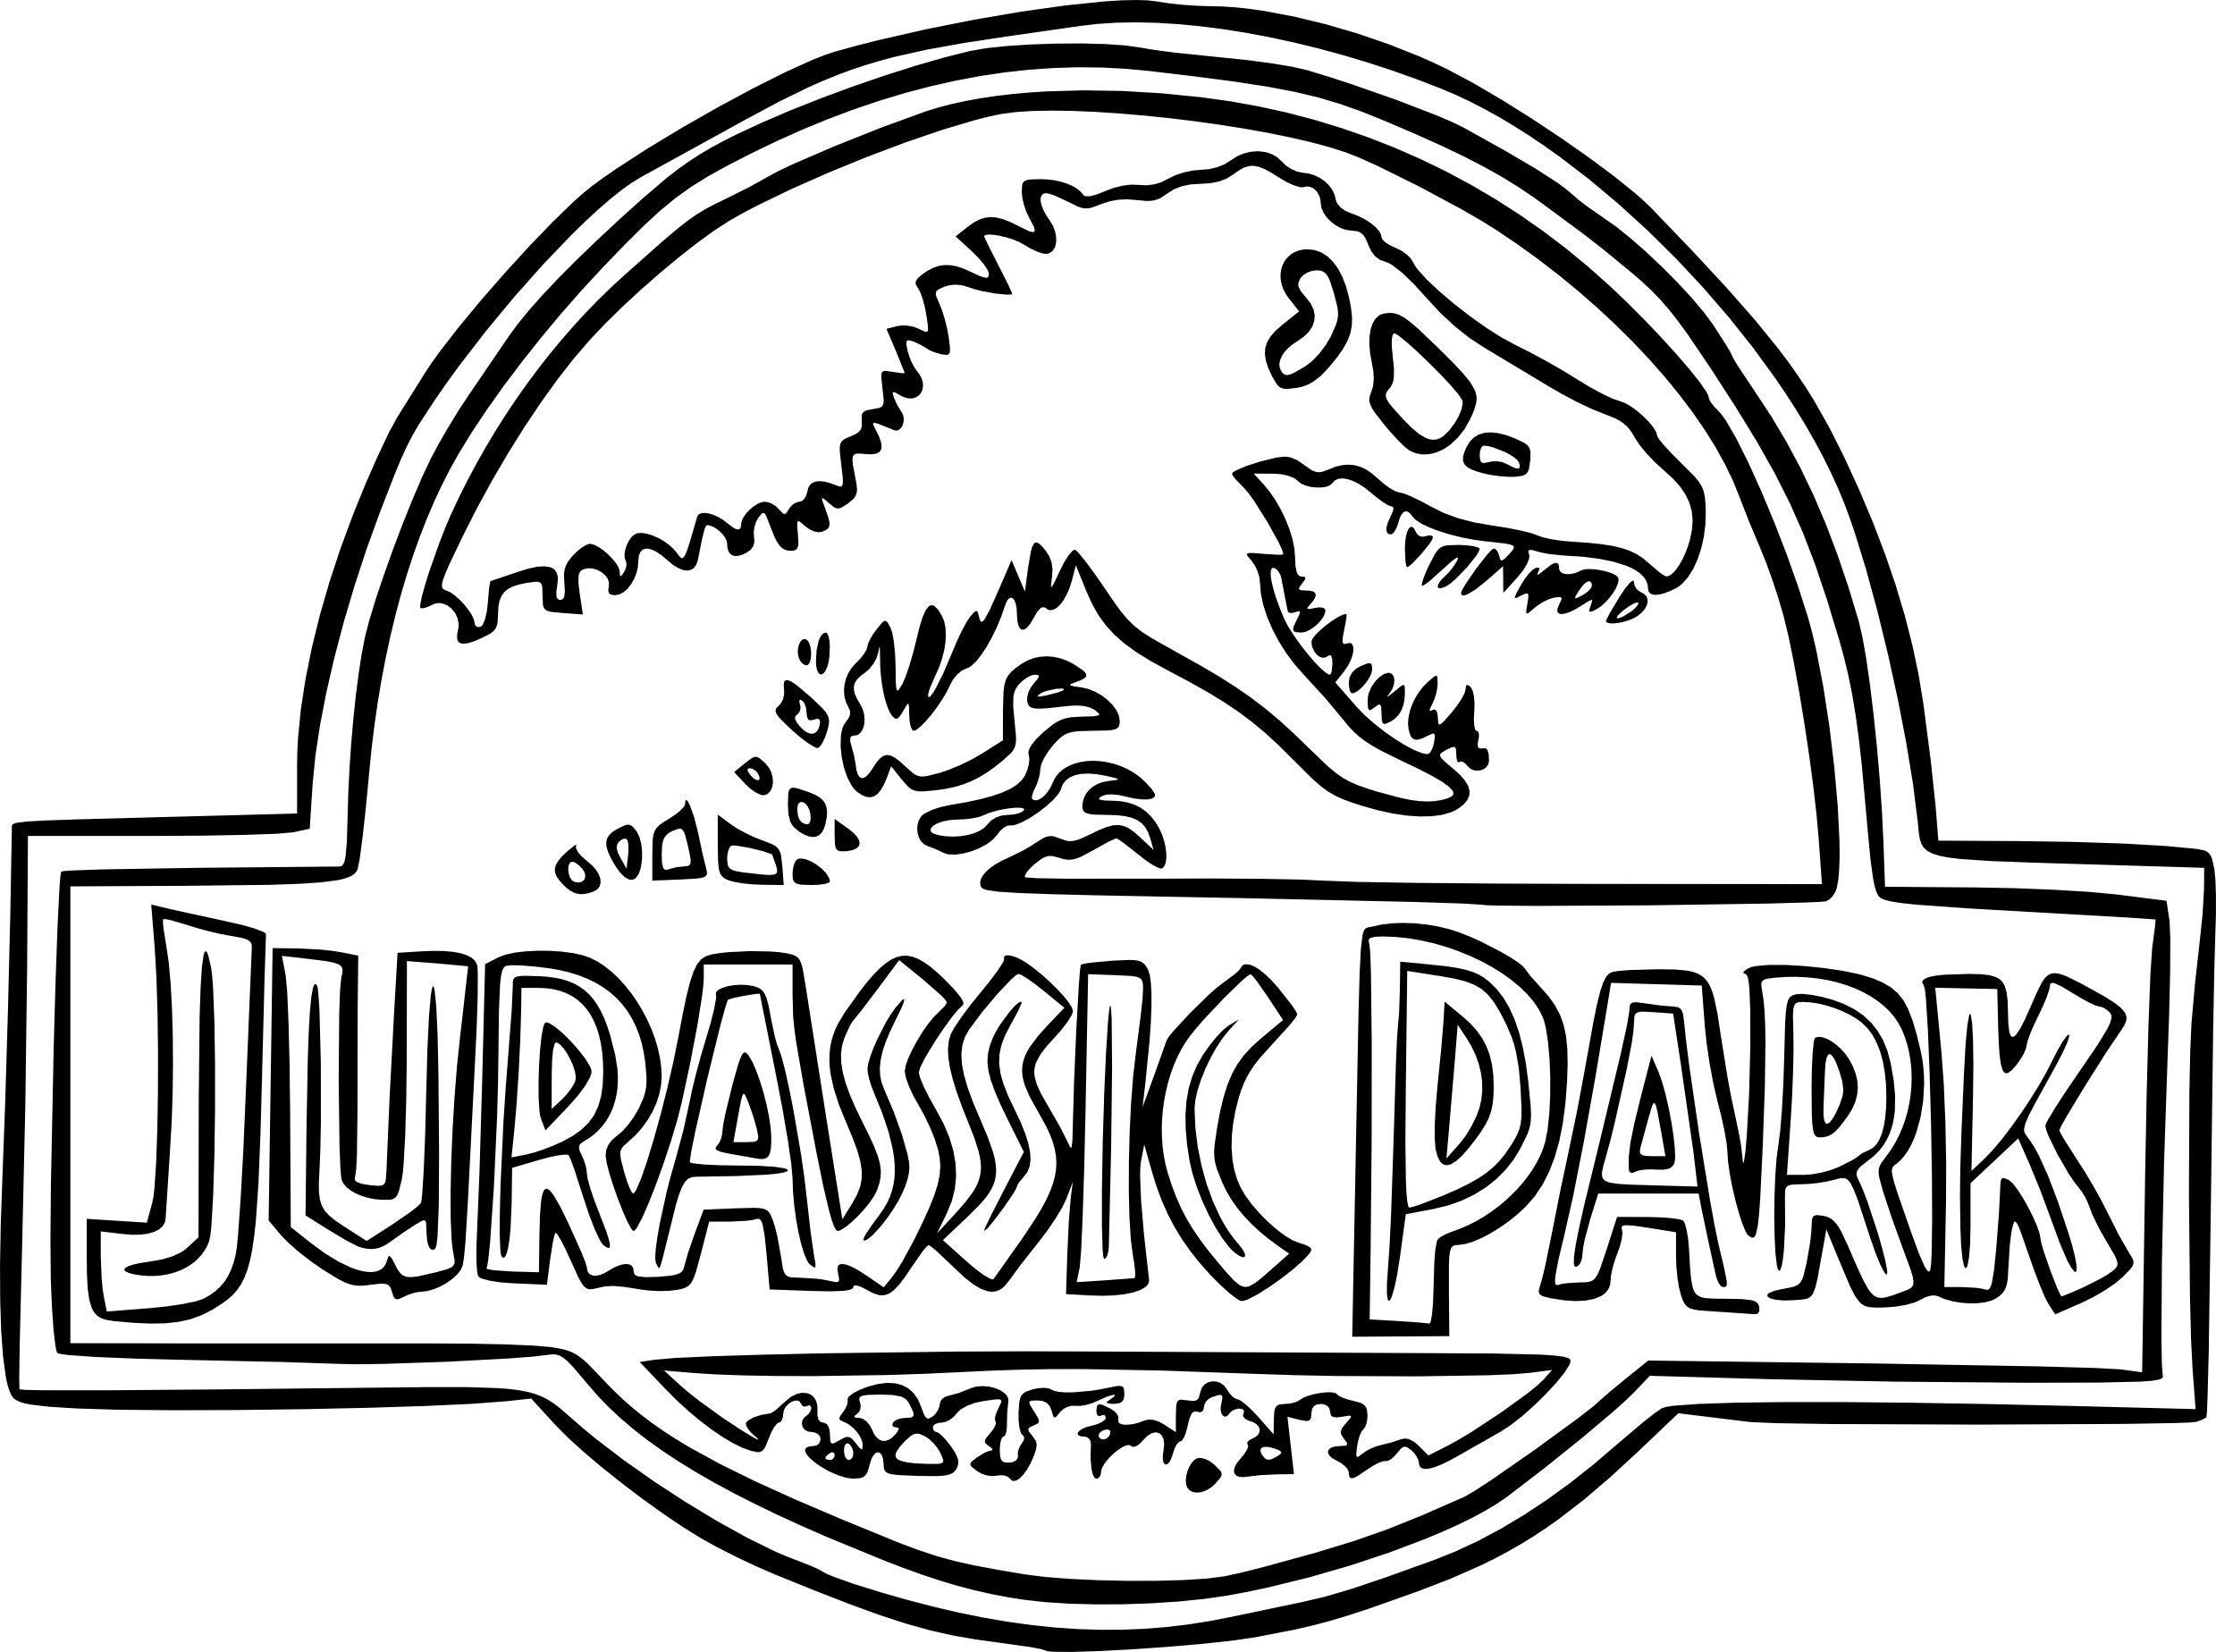 Jurassic World Coloring Pages New Coloring Pages Jurassic World Coloring